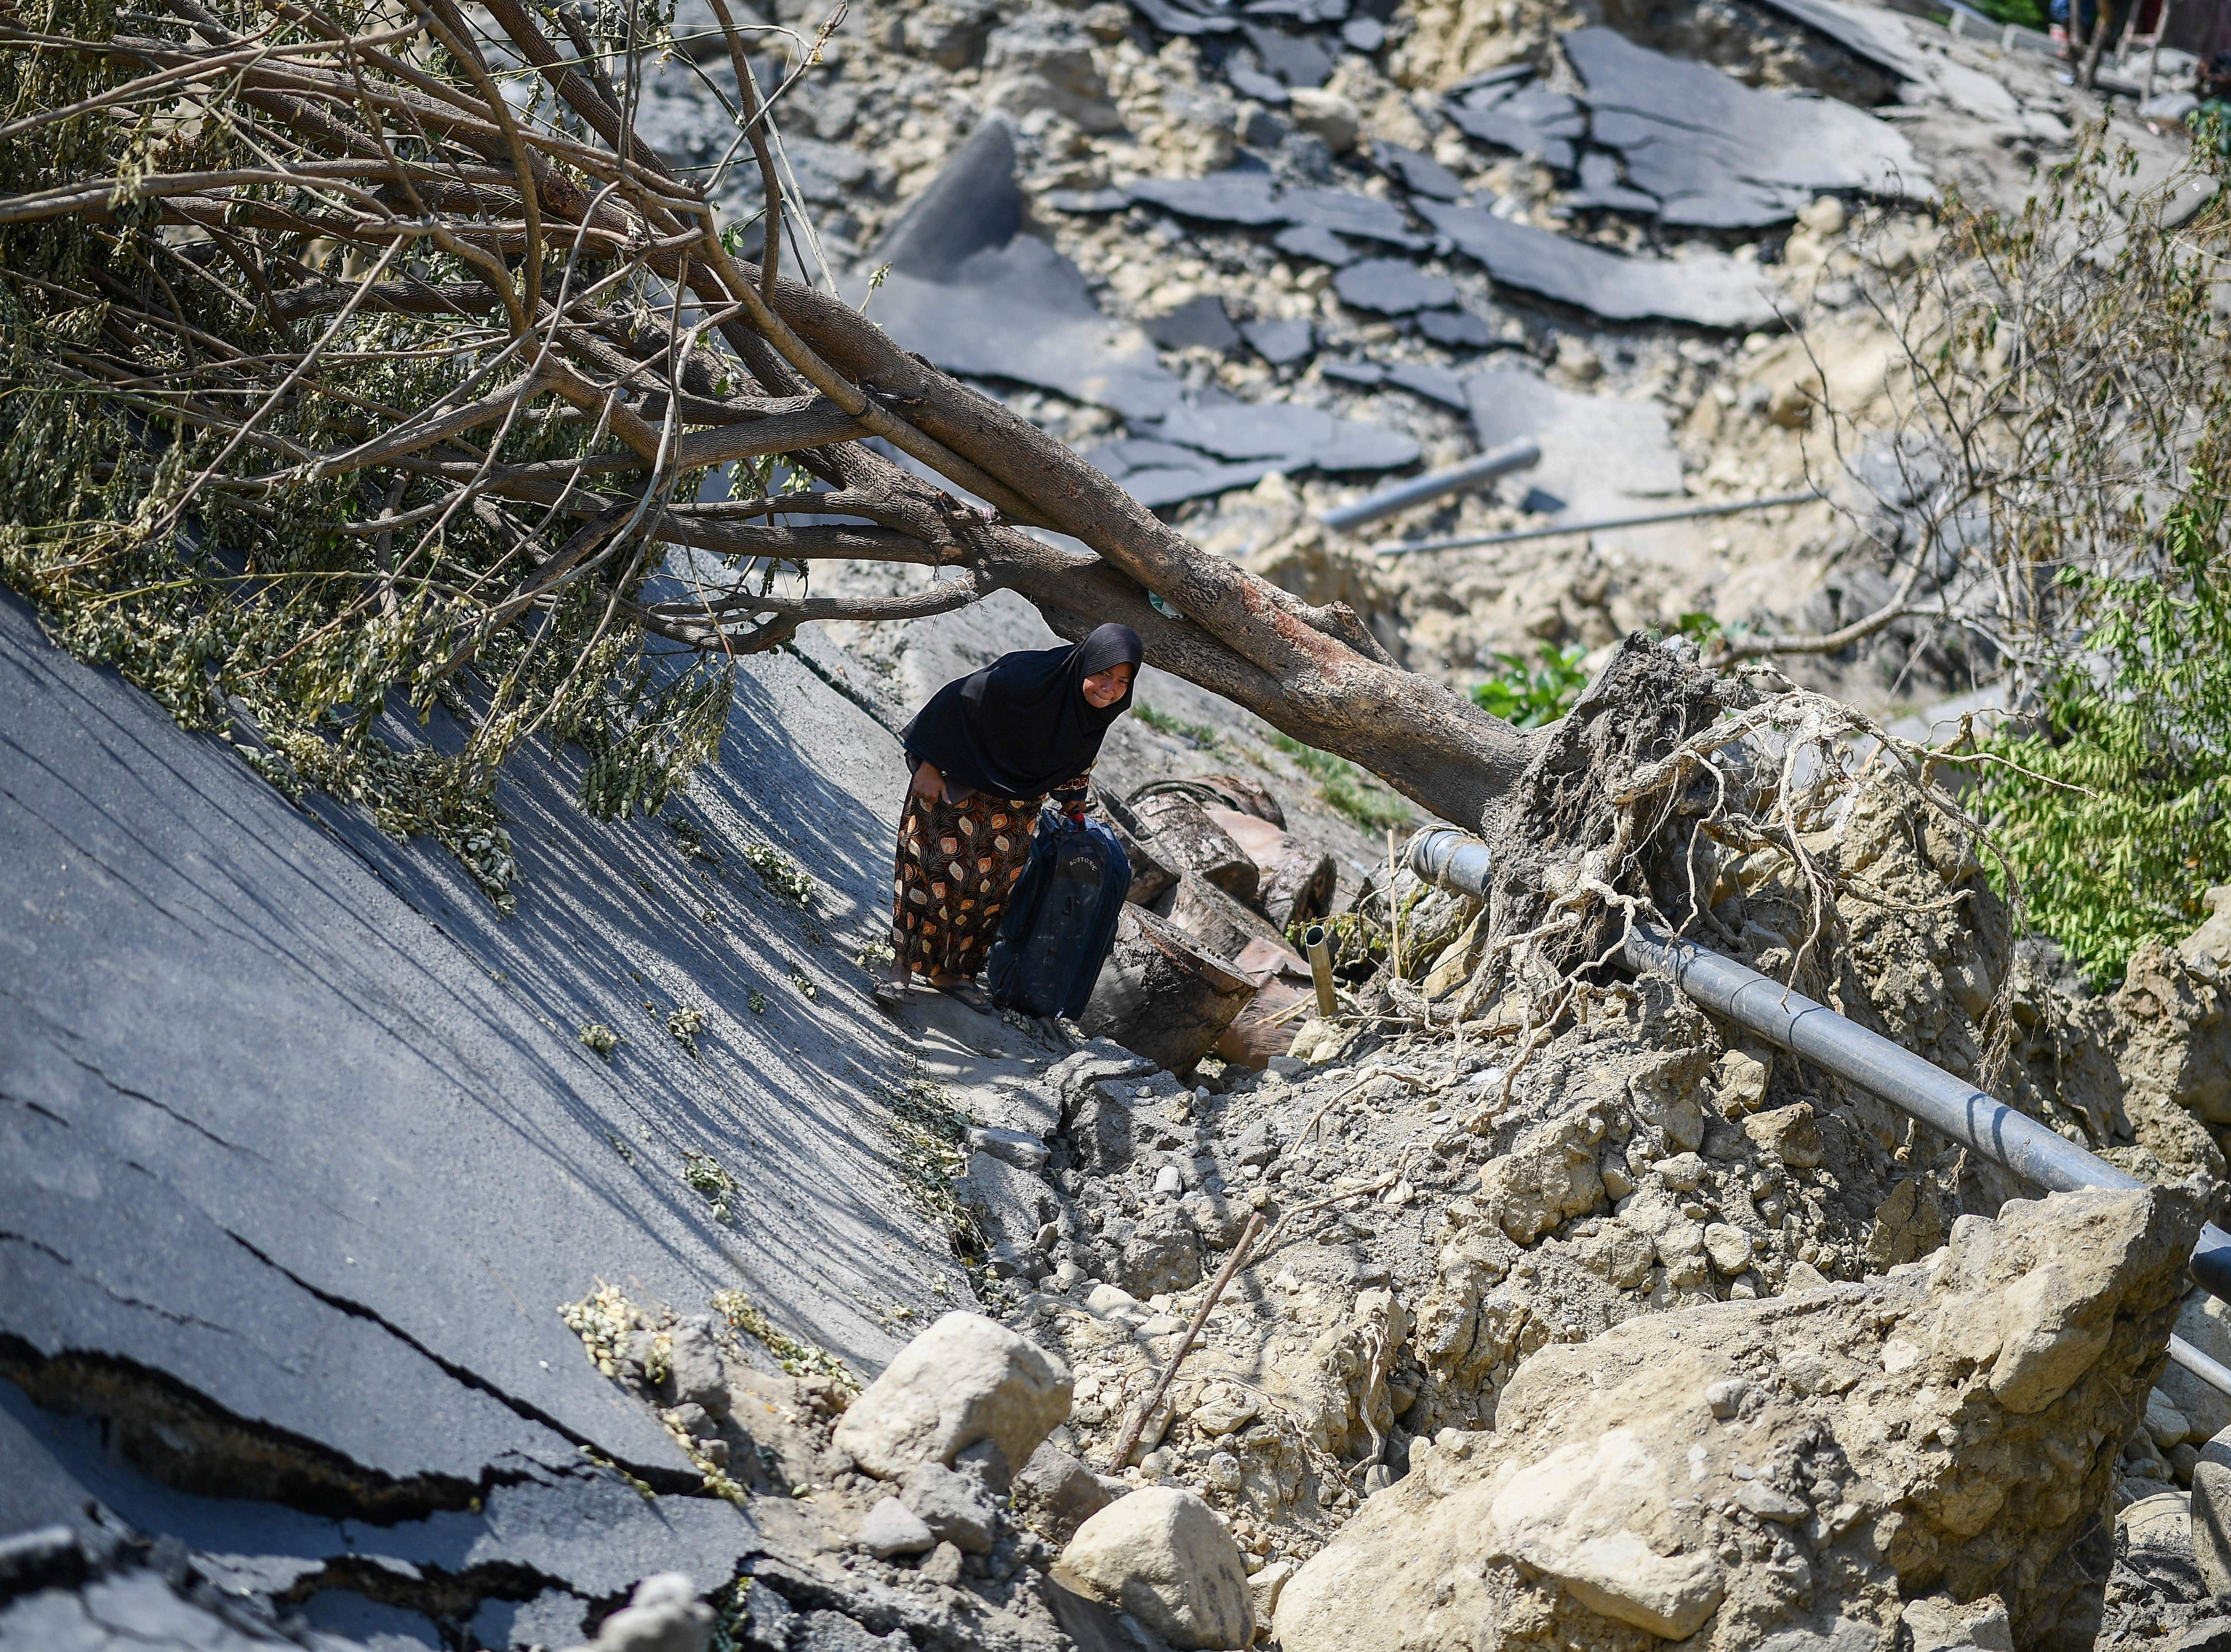 A woman drags a suitcase along a destroyed road in Palu, Indonesia's Central Sulawesi on Oct. 2, 2018, after an earthquake and tsunami hit the area on Sept. 28. The bodies of dozens of students have been pulled from their landslide-swamped church in Sulawesi, officials said, as an international effort to help nearly 200,000 Indonesia disaster victims ground into gear.